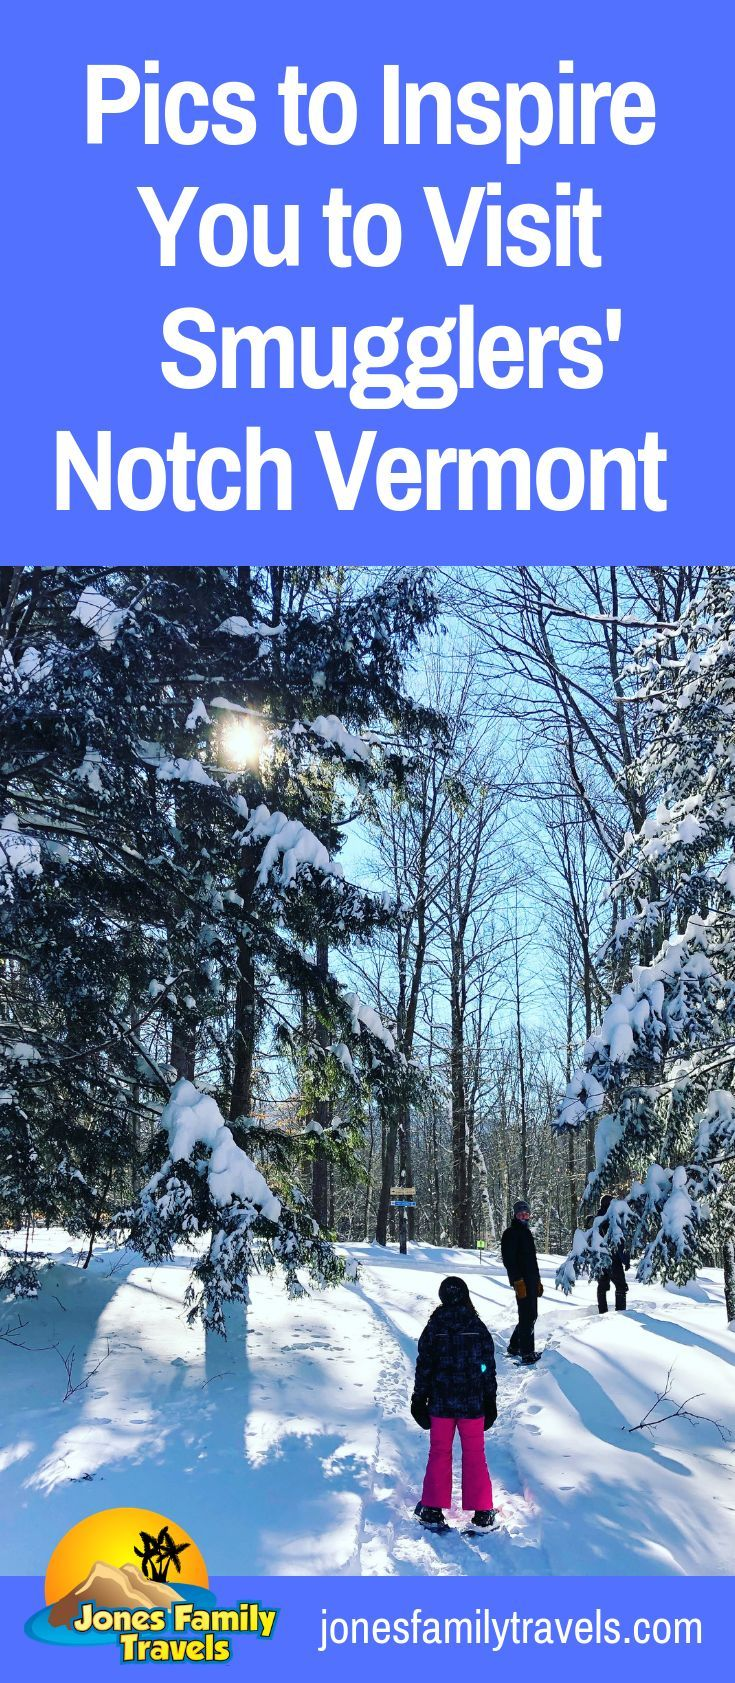 Smugglers Notch Vermont 6 Pics To Inspire You For A Winter Getaway Vermont Vacation Best Winter Vacations Vermont Winter